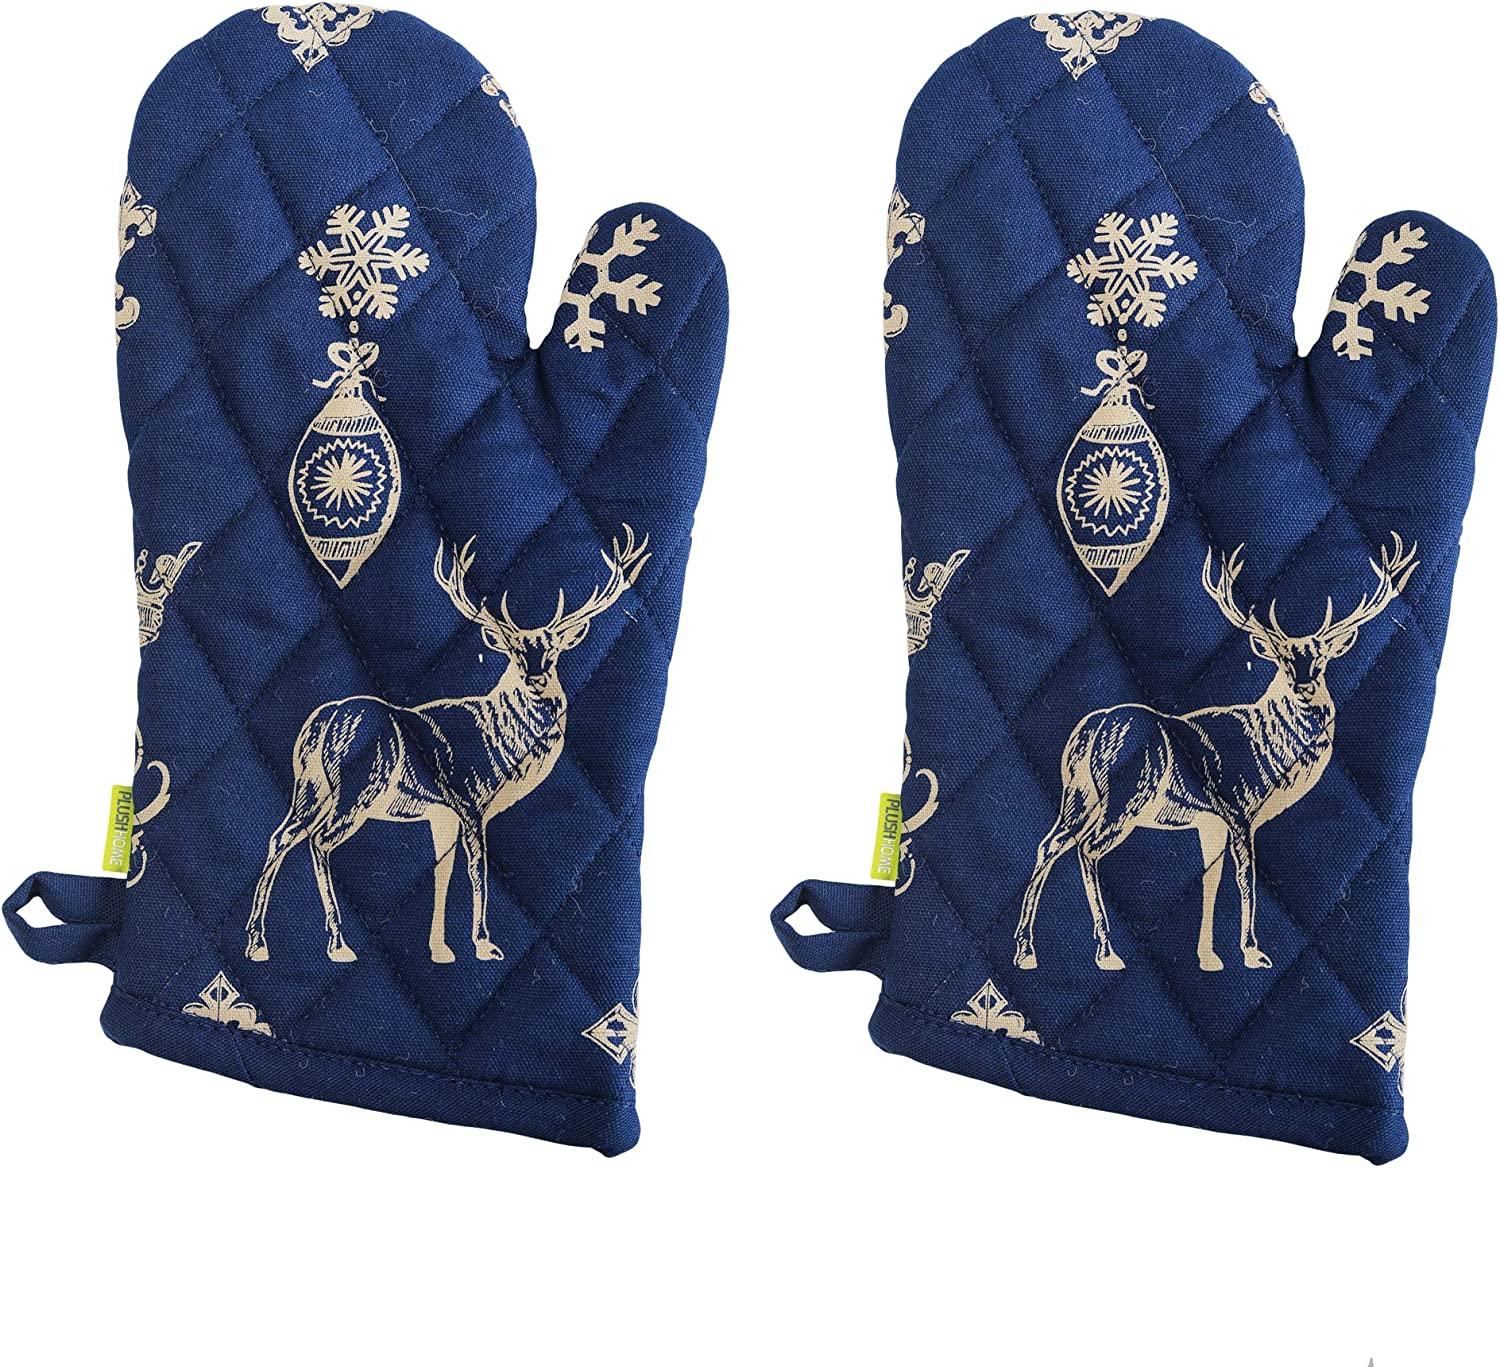 "Set of 2 Oven Mitts - Indigo Christmas design, 100% Cotton of Size 7""X12 Inch with high heat resistant polyester filling for Thanks Giving, Christmas & other Holiday Season."